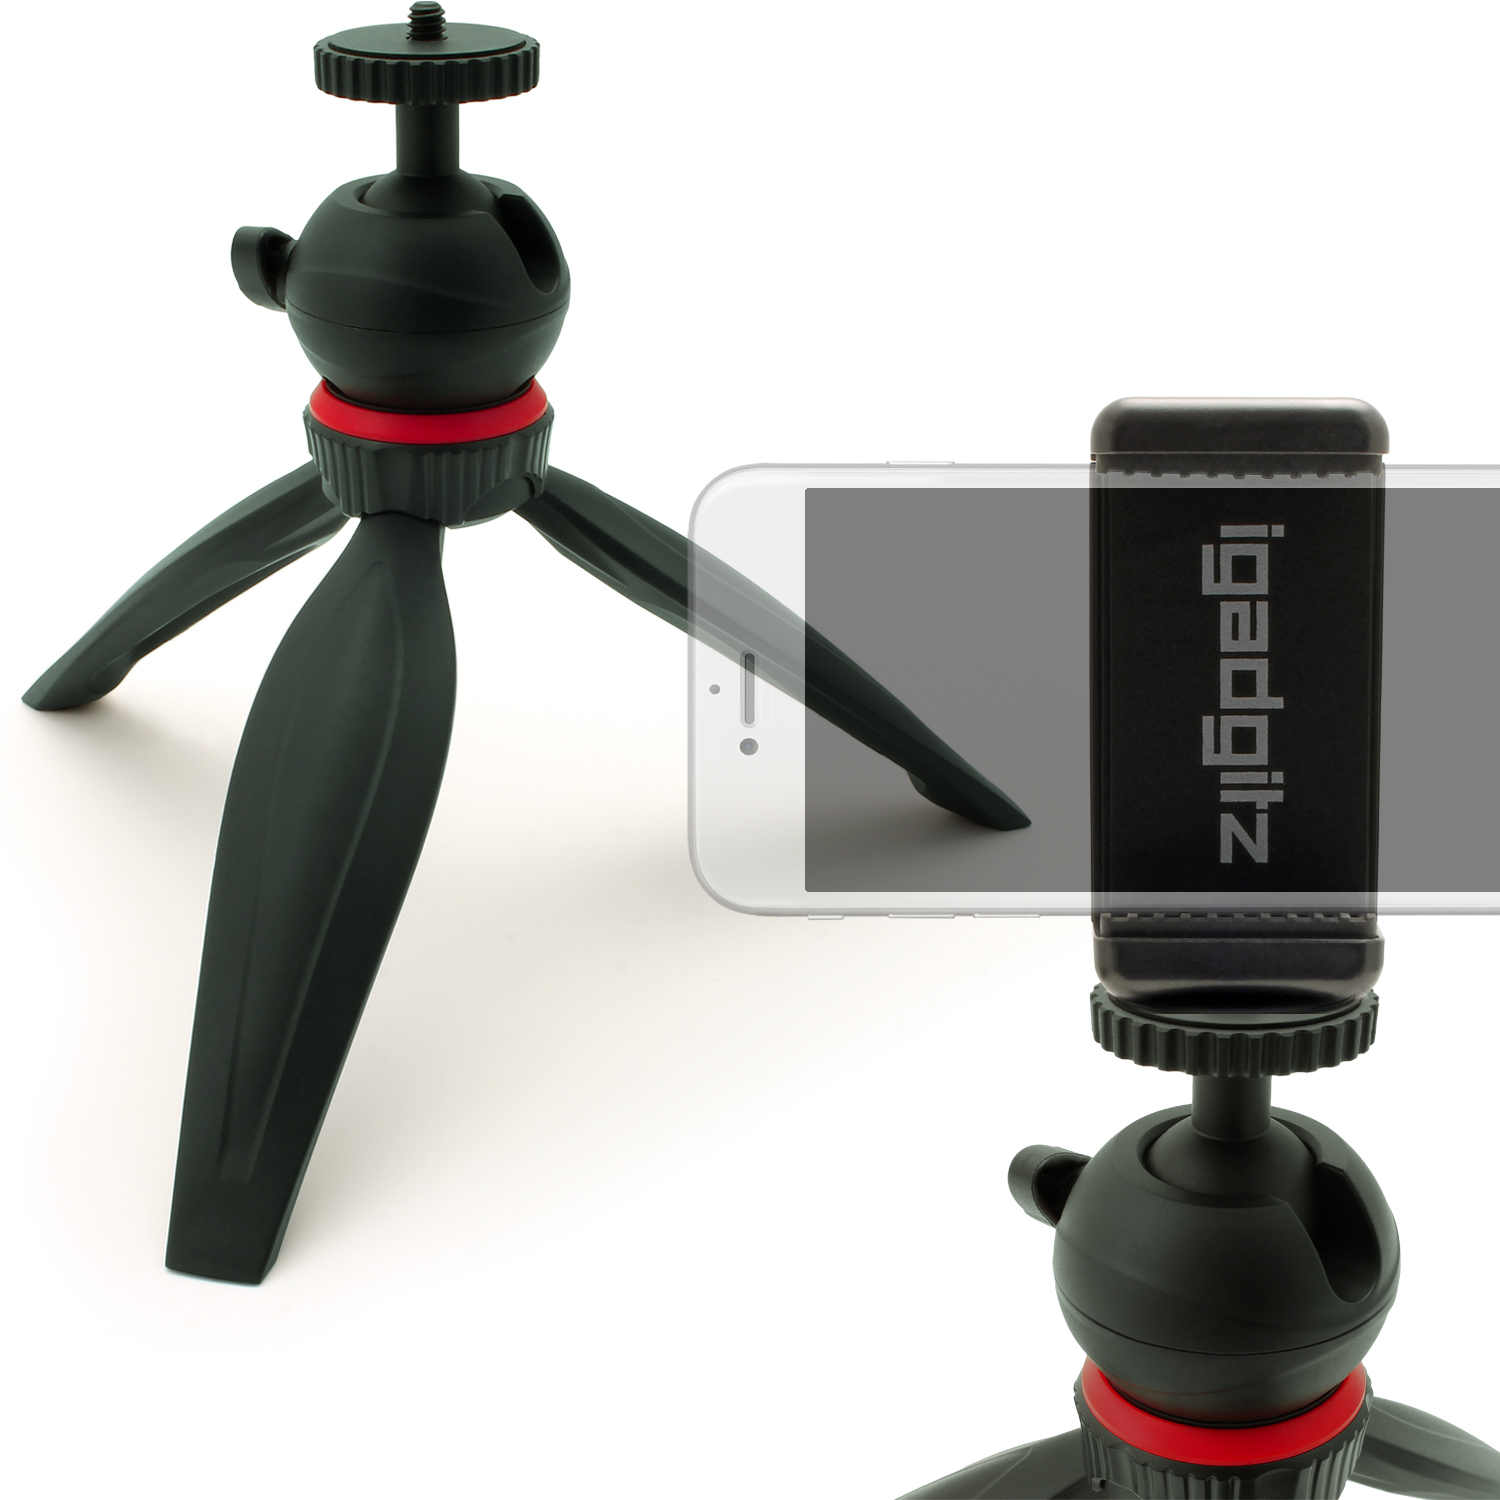 iGadgitz Lightweight Mini Table Top Tripod Stand with Smartphone Holder Mount Bracket Adapter - Black